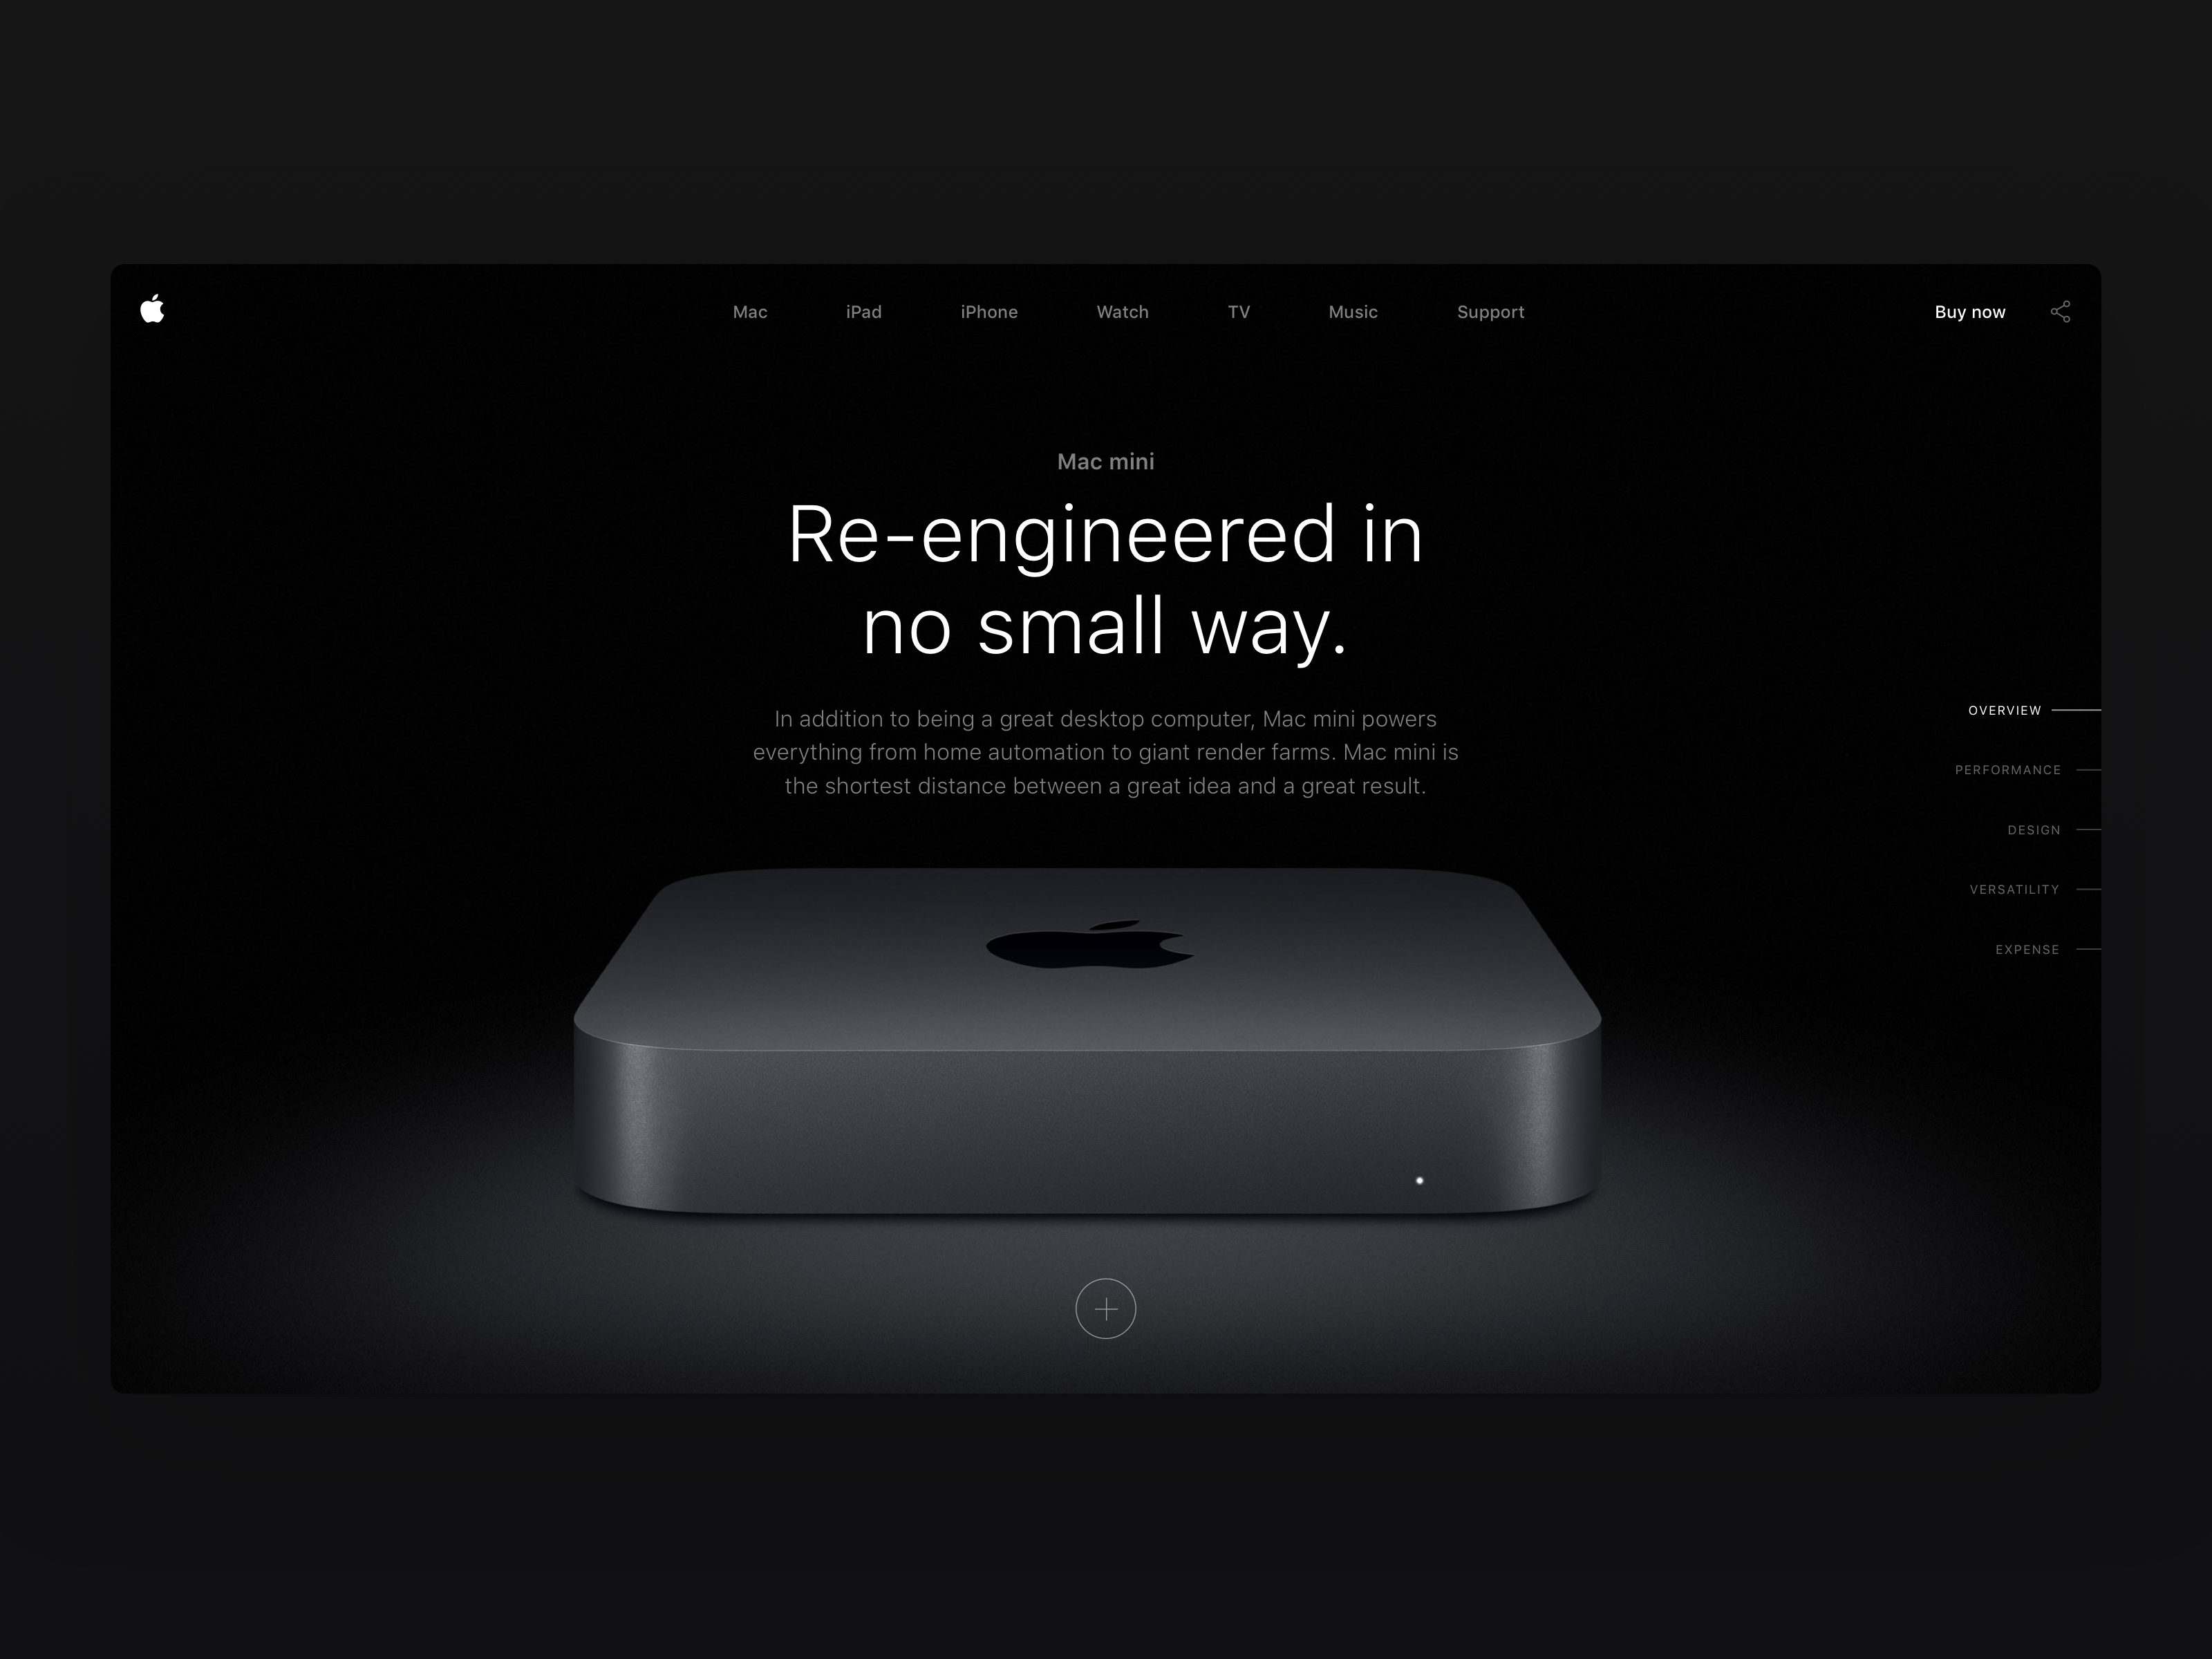 Apple Mac Mini - Product Detail page by Milan Houter on Dribbble